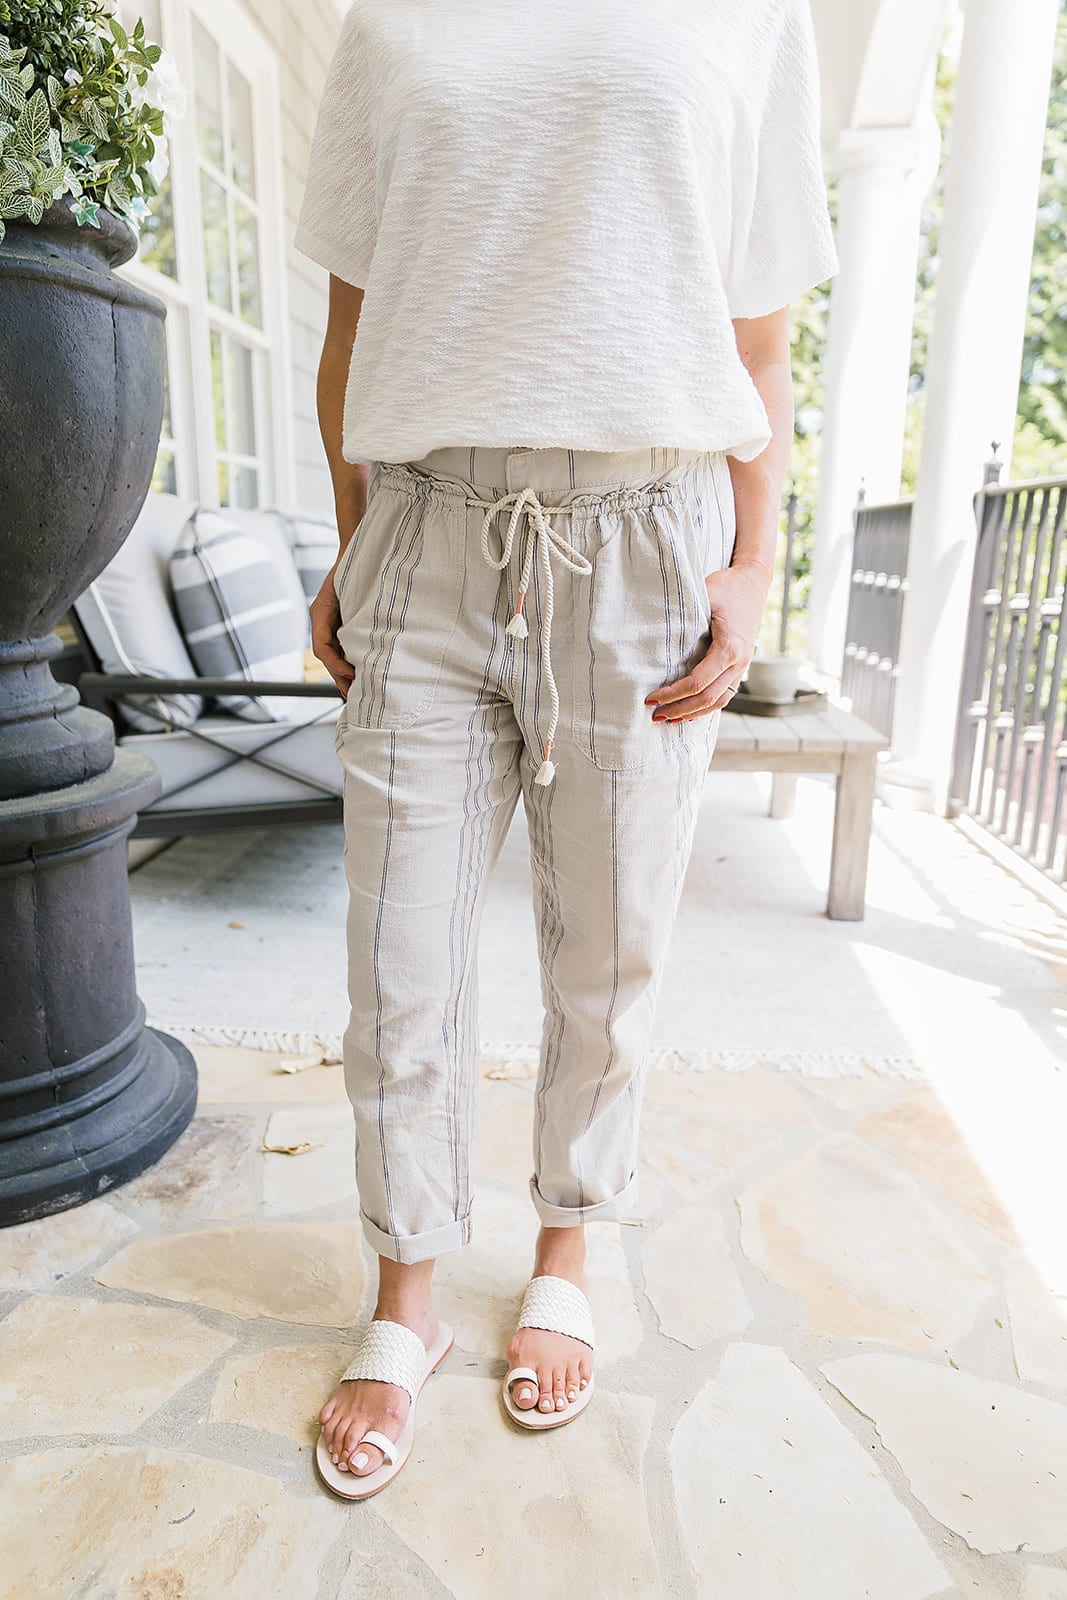 Anthropologie pants - cropped striped pants that are easy to wear and comfortable for summer days.